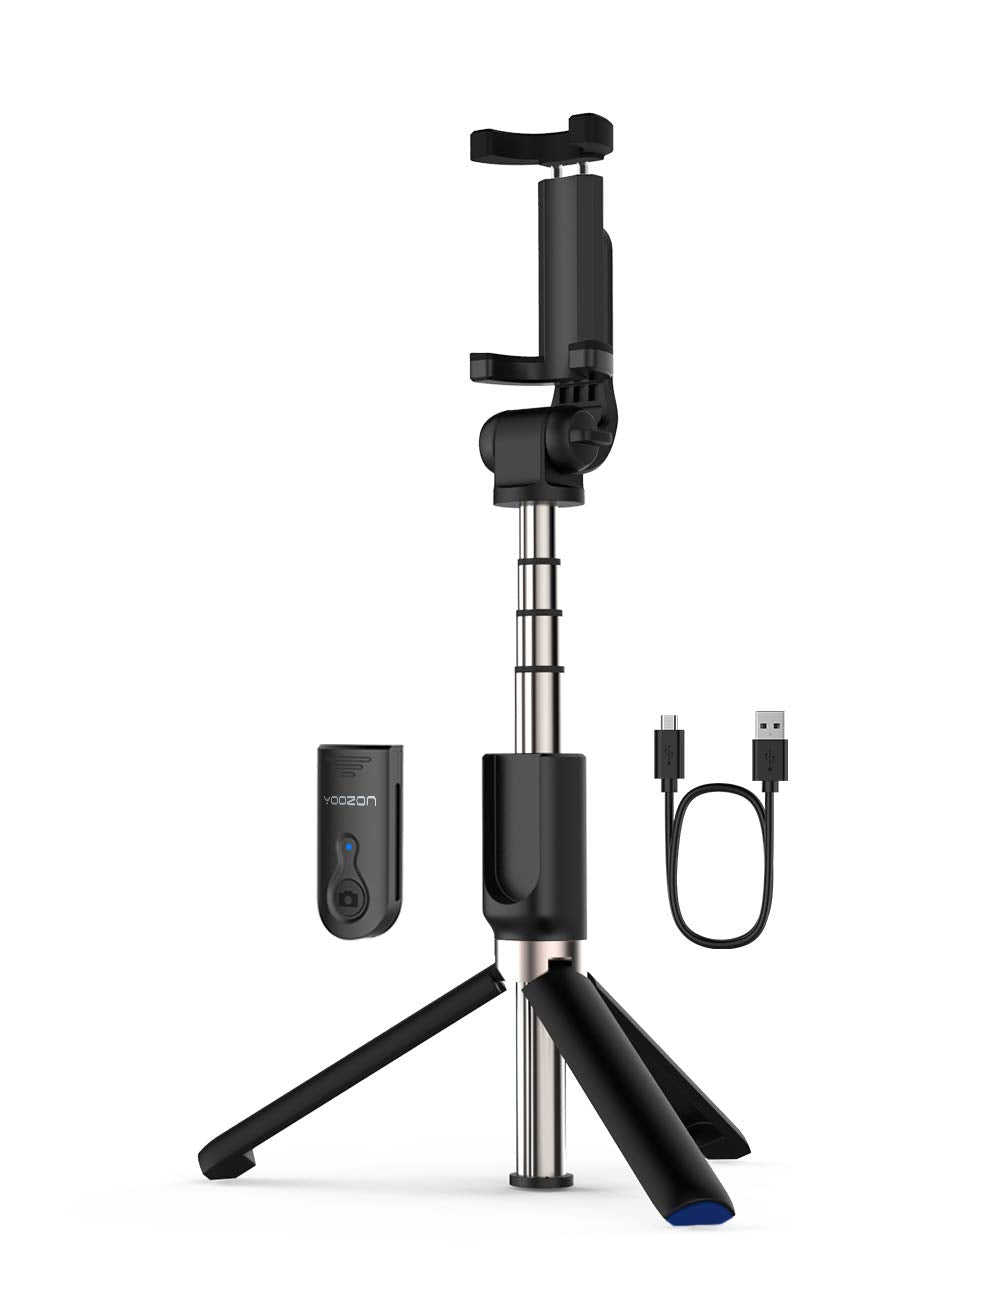 Selfie Stick Tripod Bluetooth, Extendable Phone Tripod Selfie Stick with Wireless Remote Shutter for iPhone Xs MAX/XR/XS/X/8/8P/7/7P/6s/6, Galaxy S9/S8/S7/S6/Note 9/8, Huawei